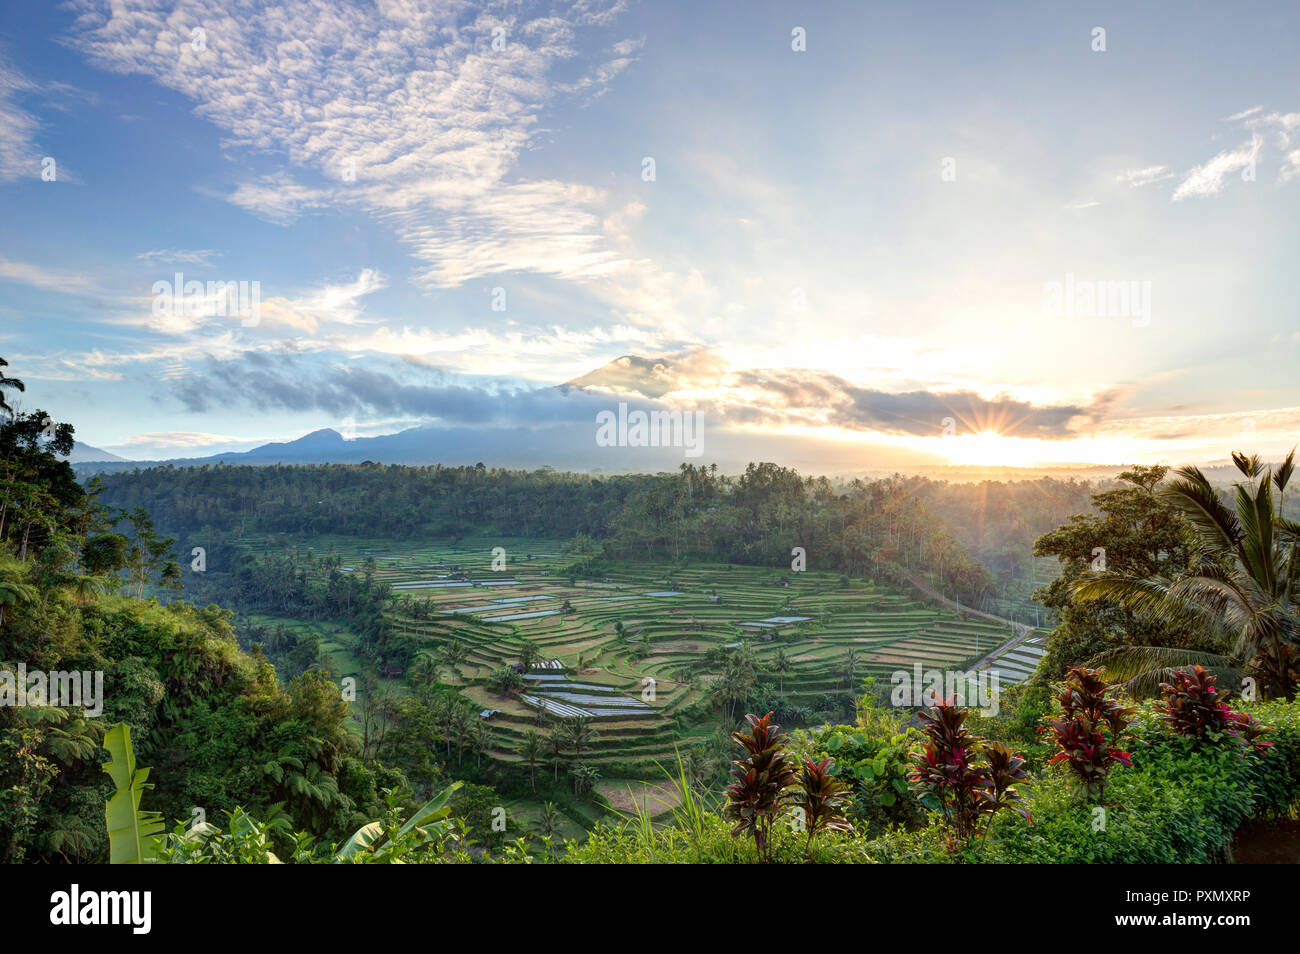 View of rice terraces and Gunung Agung volcano at sunrise, Rendang, Bali, Indonesia - Stock Image